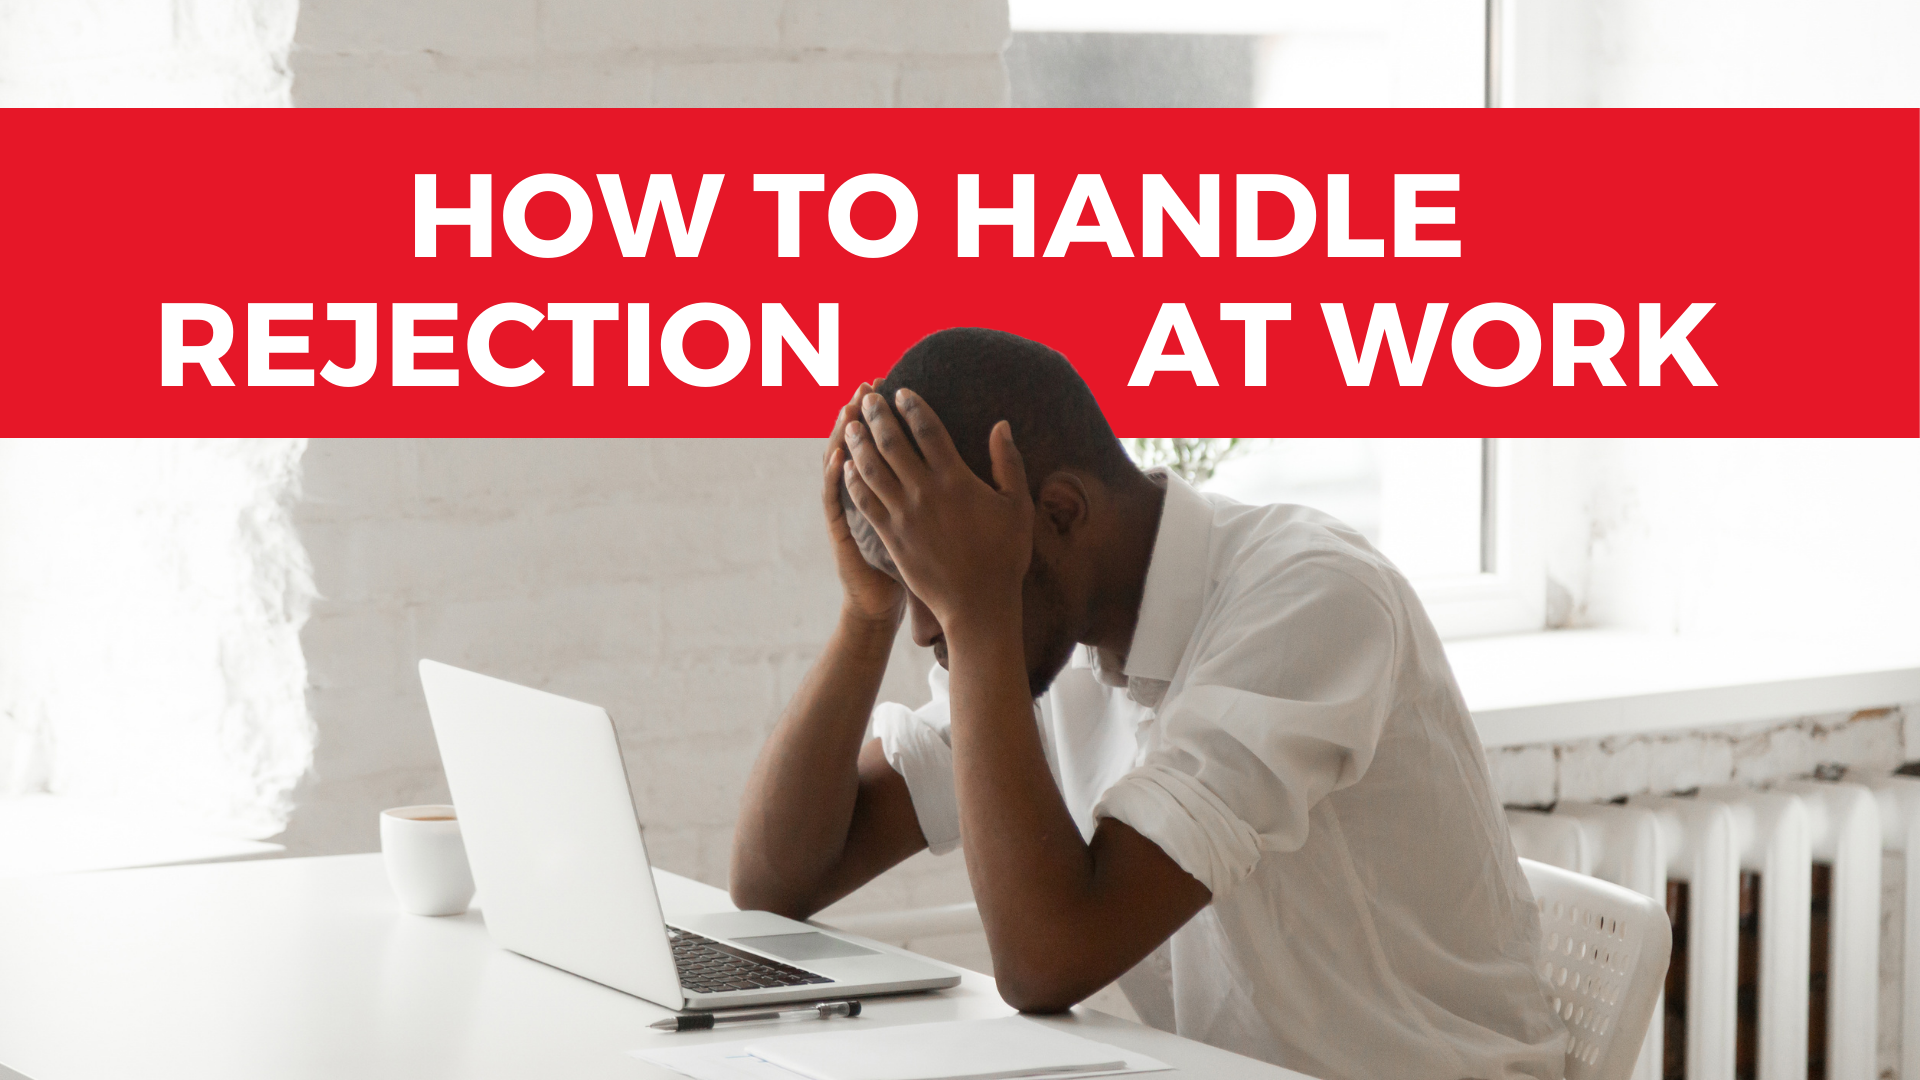 How to Handle Rejection at Work